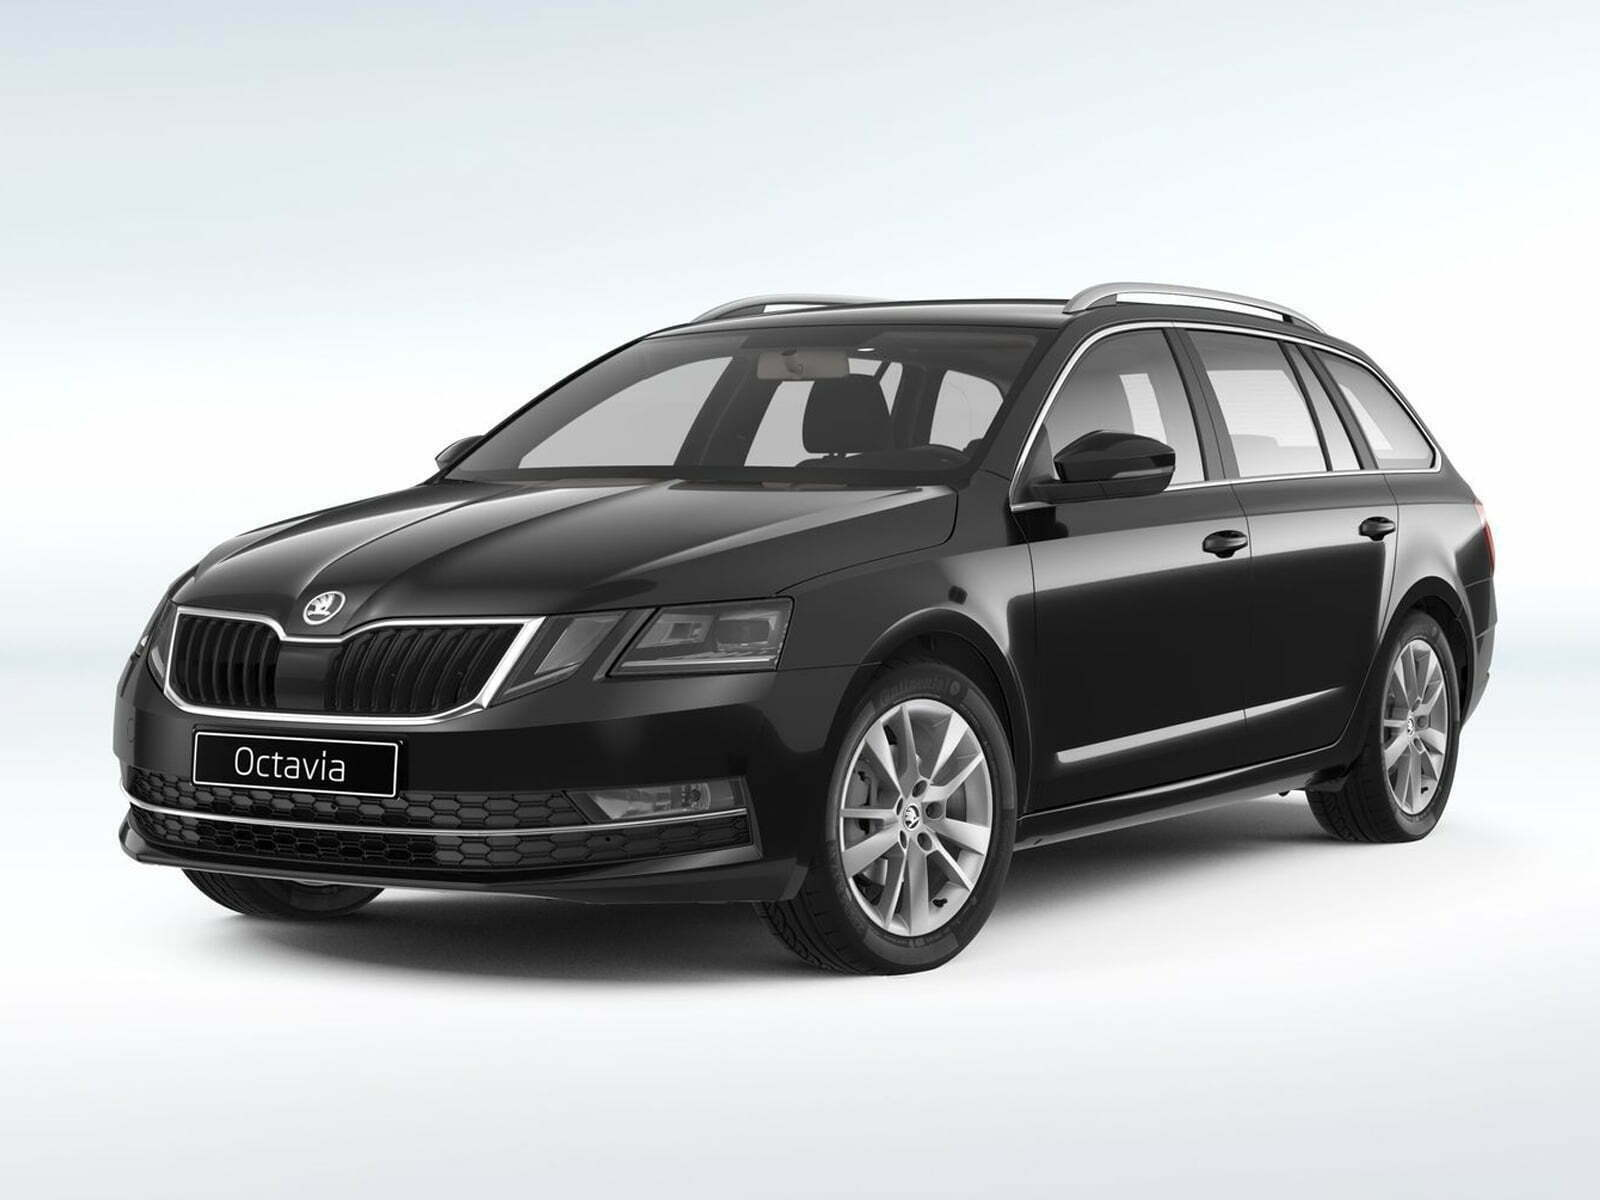 skoda octavia combi leasen nu extra voordelig bij leaseroute. Black Bedroom Furniture Sets. Home Design Ideas